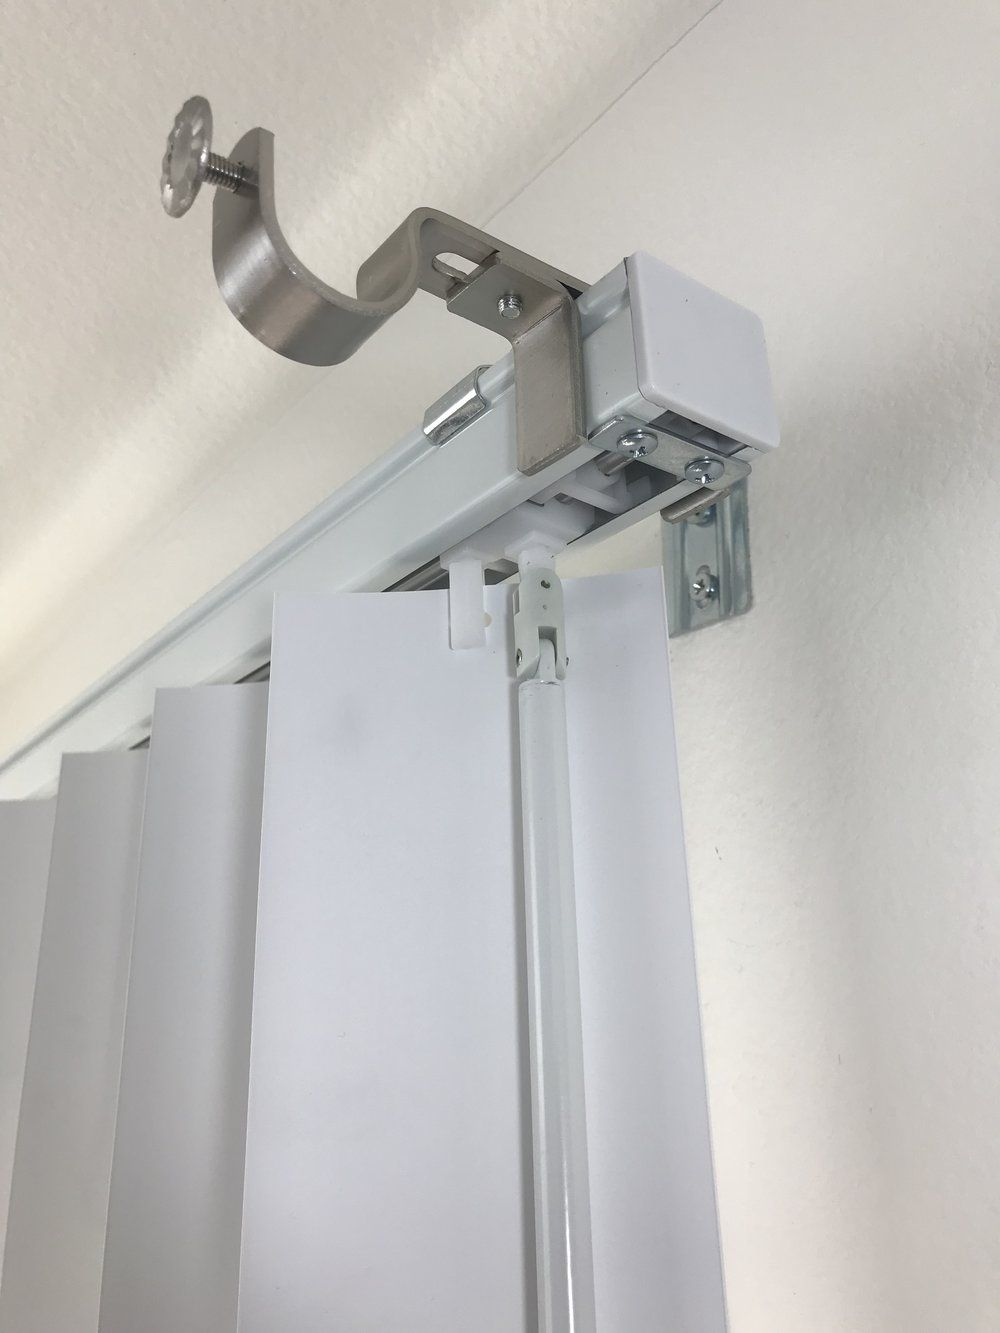 Outside Mounted Blinds Curtain Rod Bracket Attachment The Nono